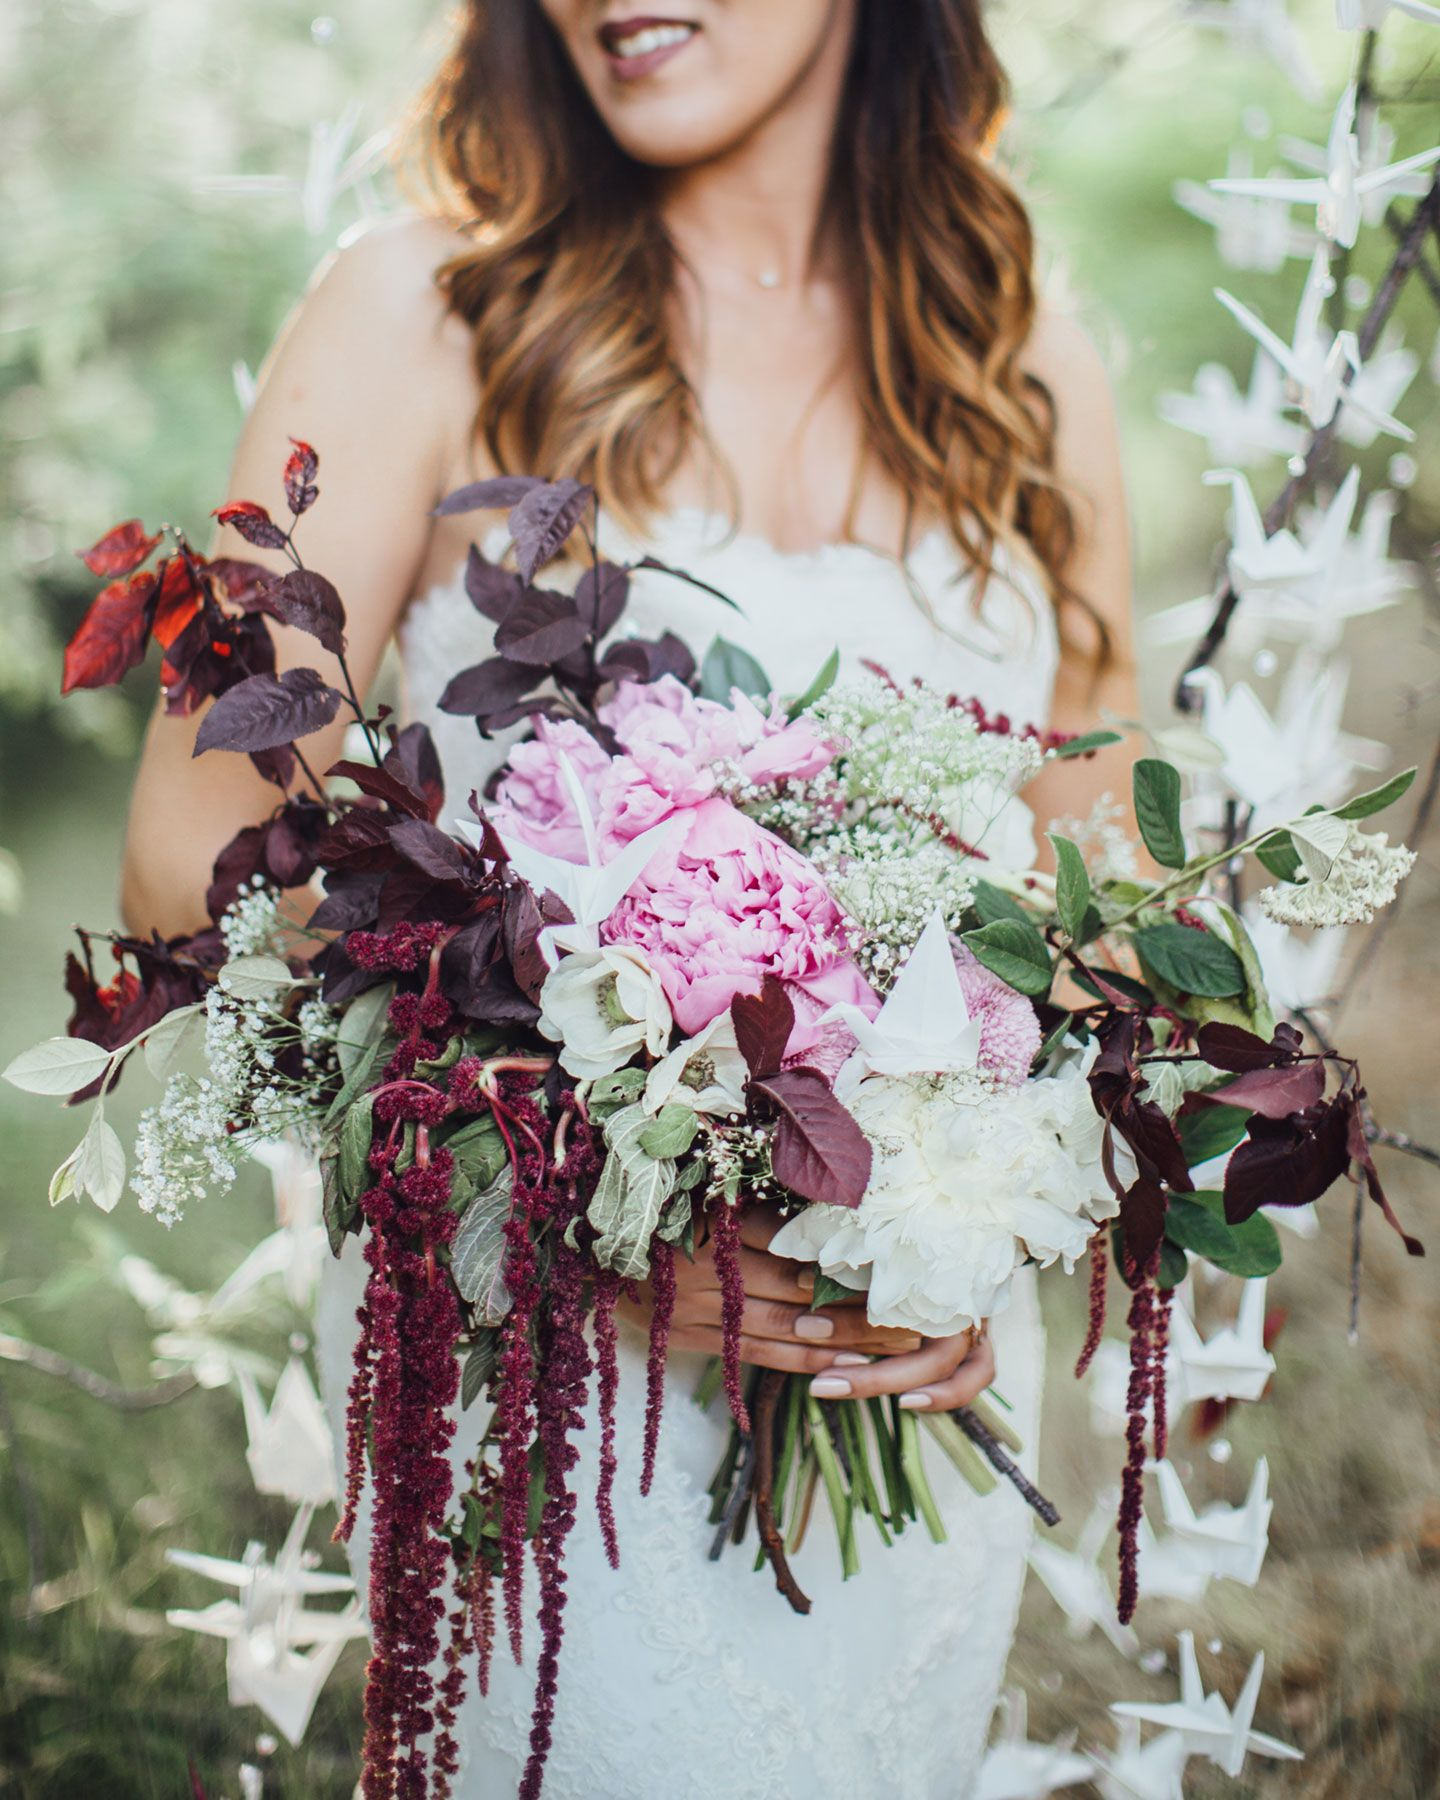 Bohemian Sedona Wedding Photographer & Florist || Red Rock Crossing & Cathedral Rock Wedding Photos || Jane in the Woods || Paper Crane